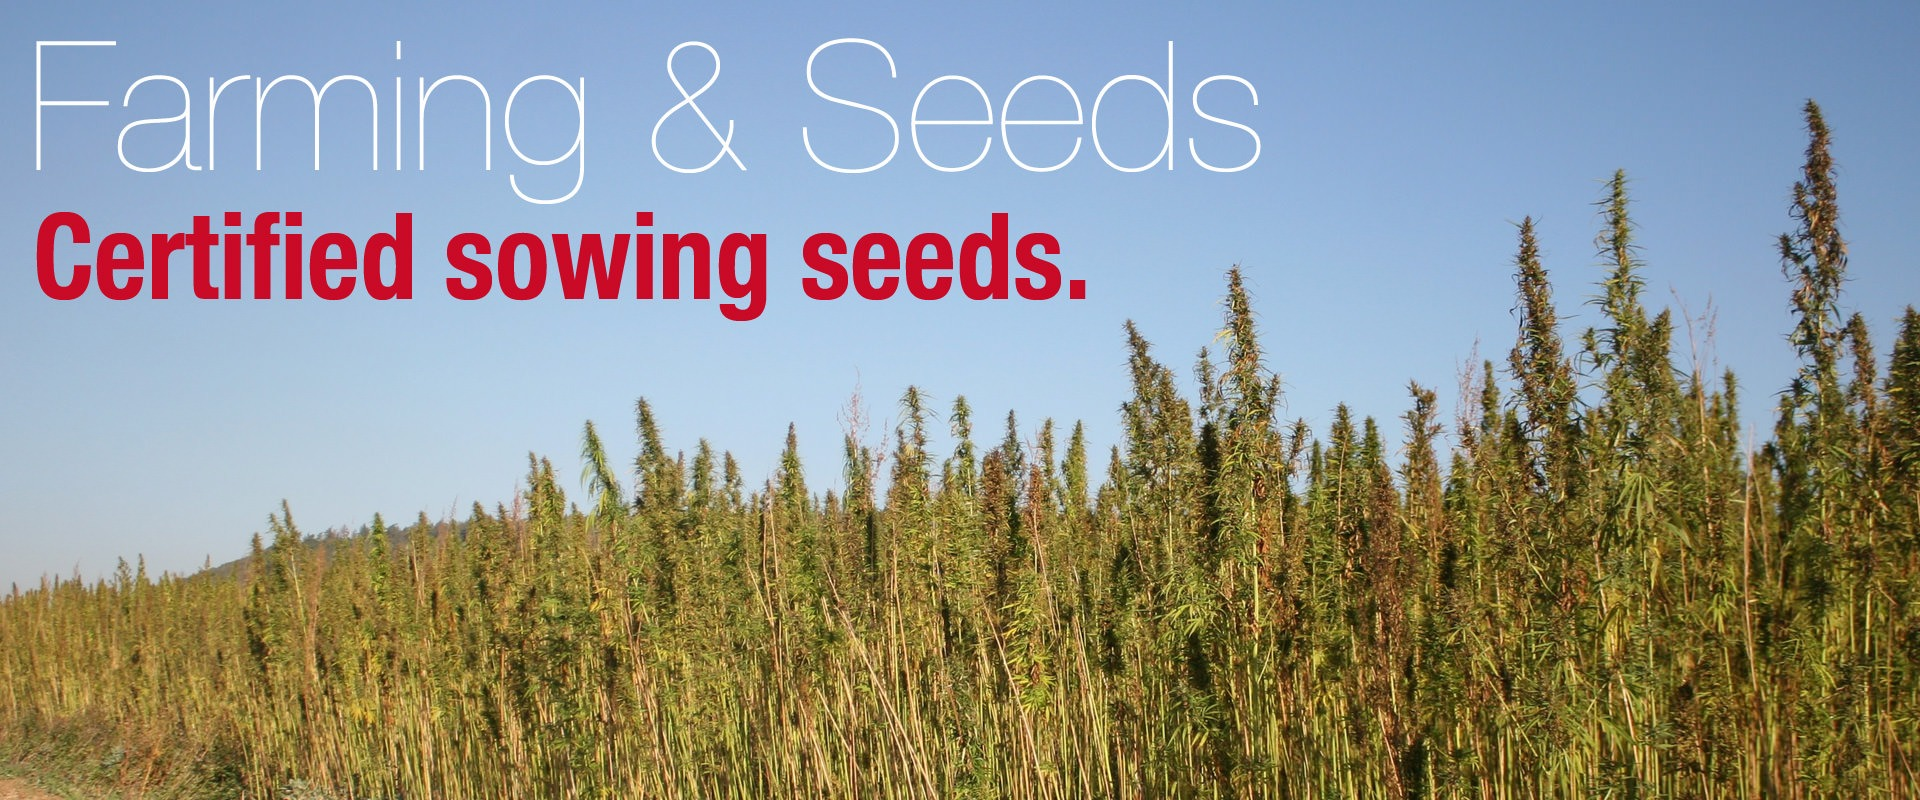 Hemp farming and certified sowing seeds.